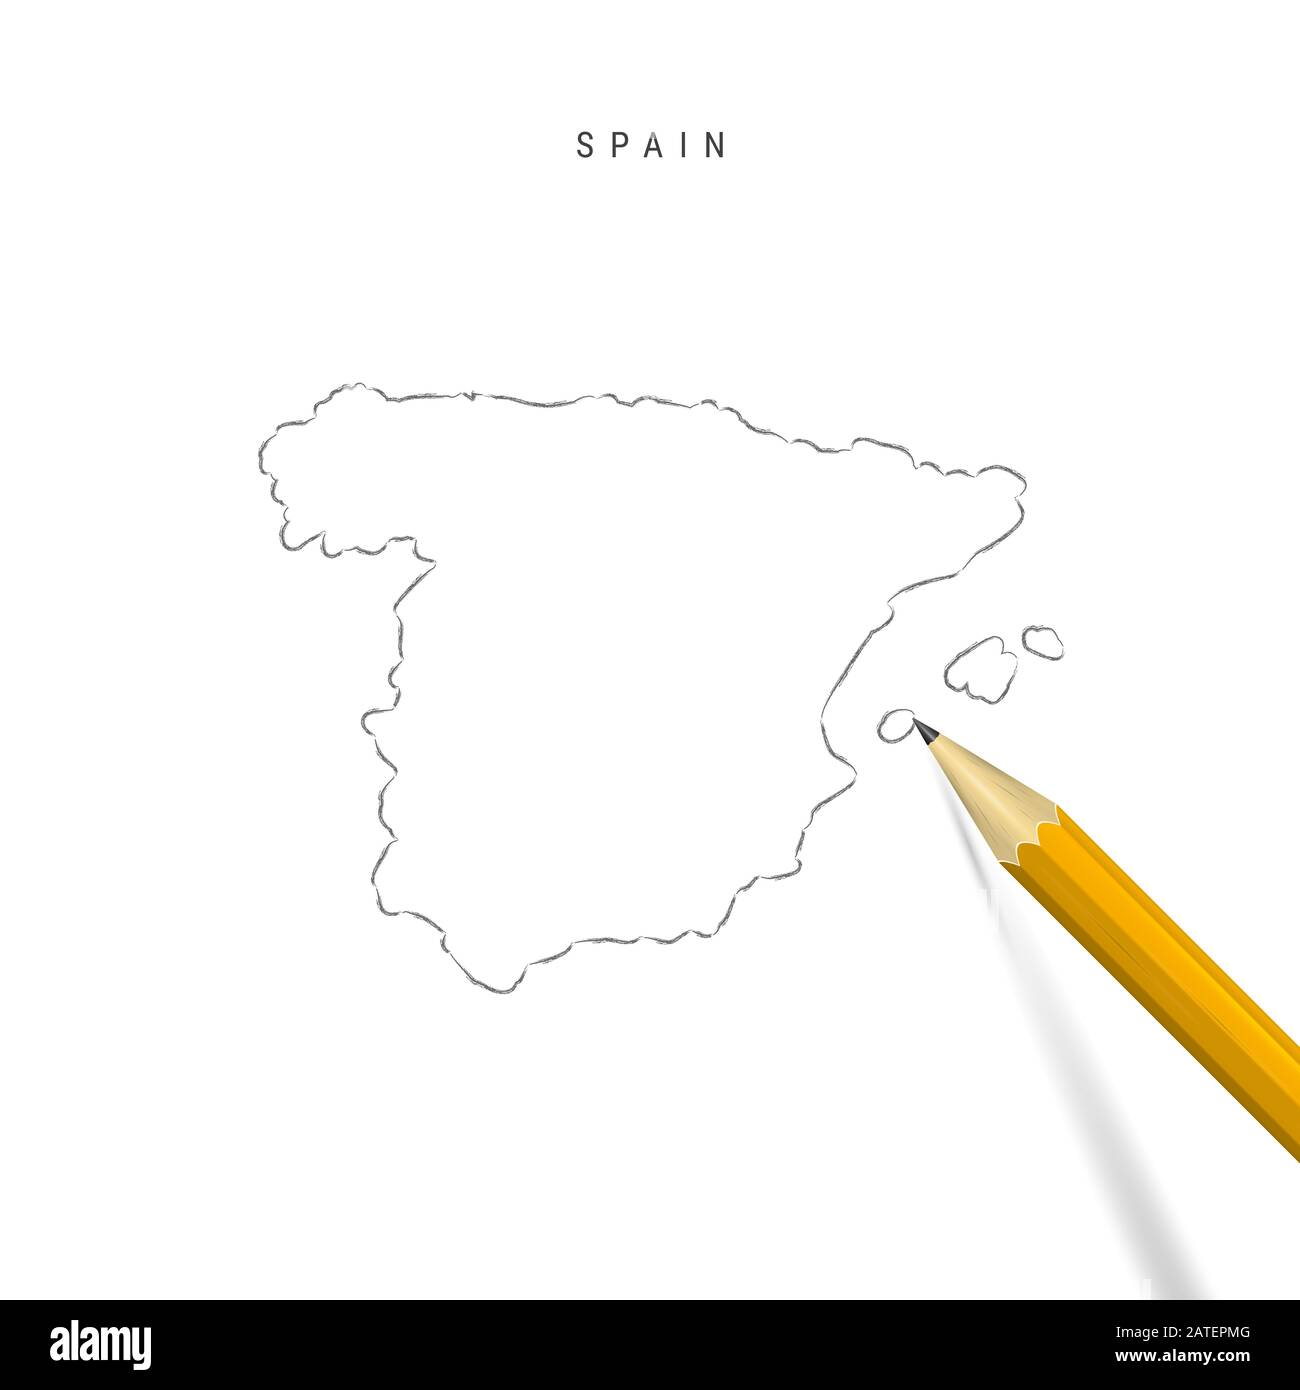 Picture of: Spain Sketch Outline Map Isolated On White Background Empty Hand Drawn Map Of Spain Realistic 3d Pencil With Soft Shadow Stock Photo Alamy